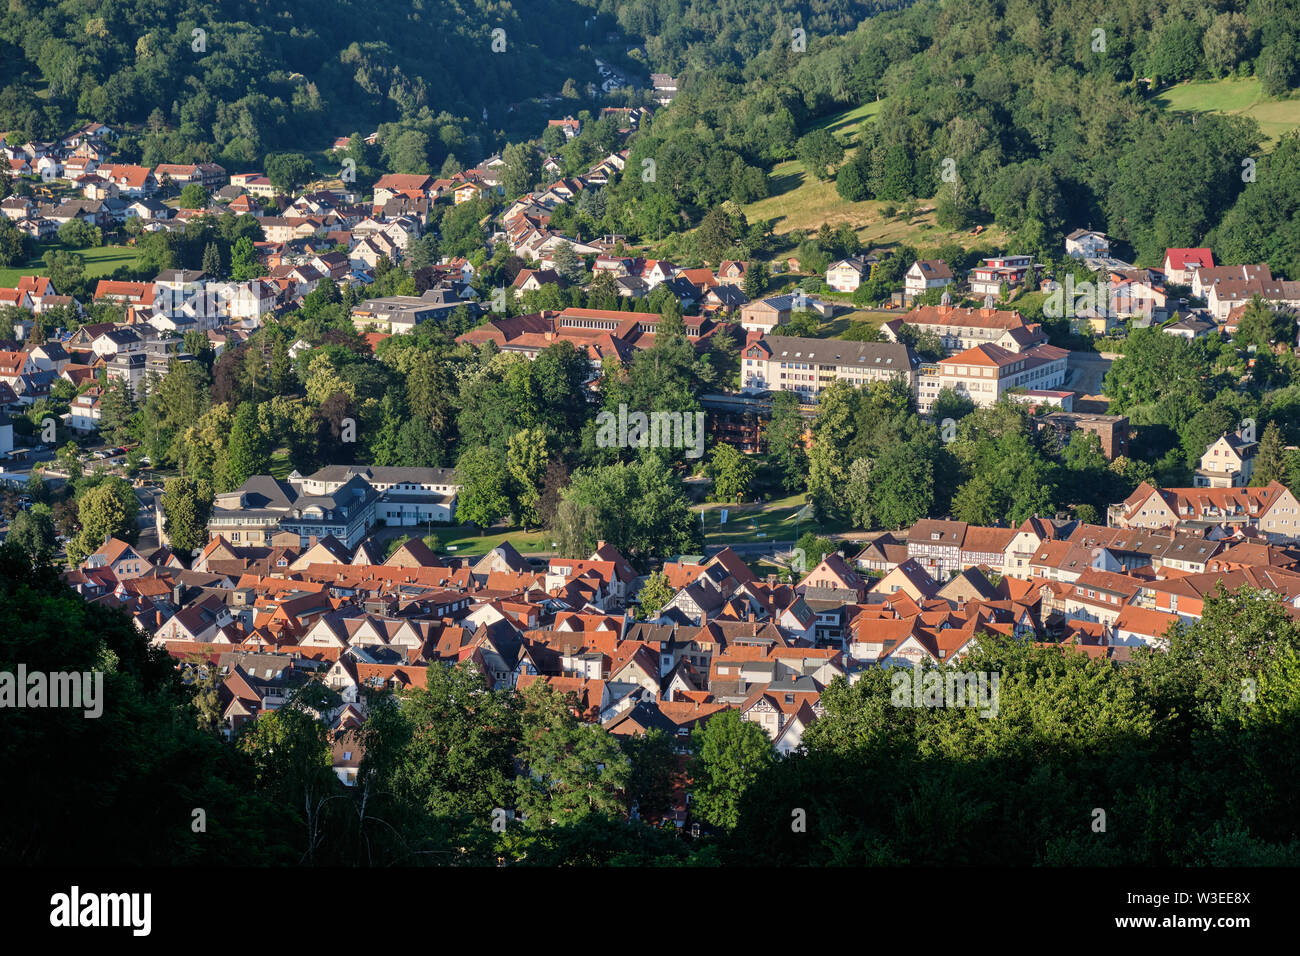 Bad Orb, Germany - June 28, 2019: View from the Wartturm on the Molkenberg hill to the townscape of Bad Orb with the buildings of the Spessart-Klinik - Stock Image